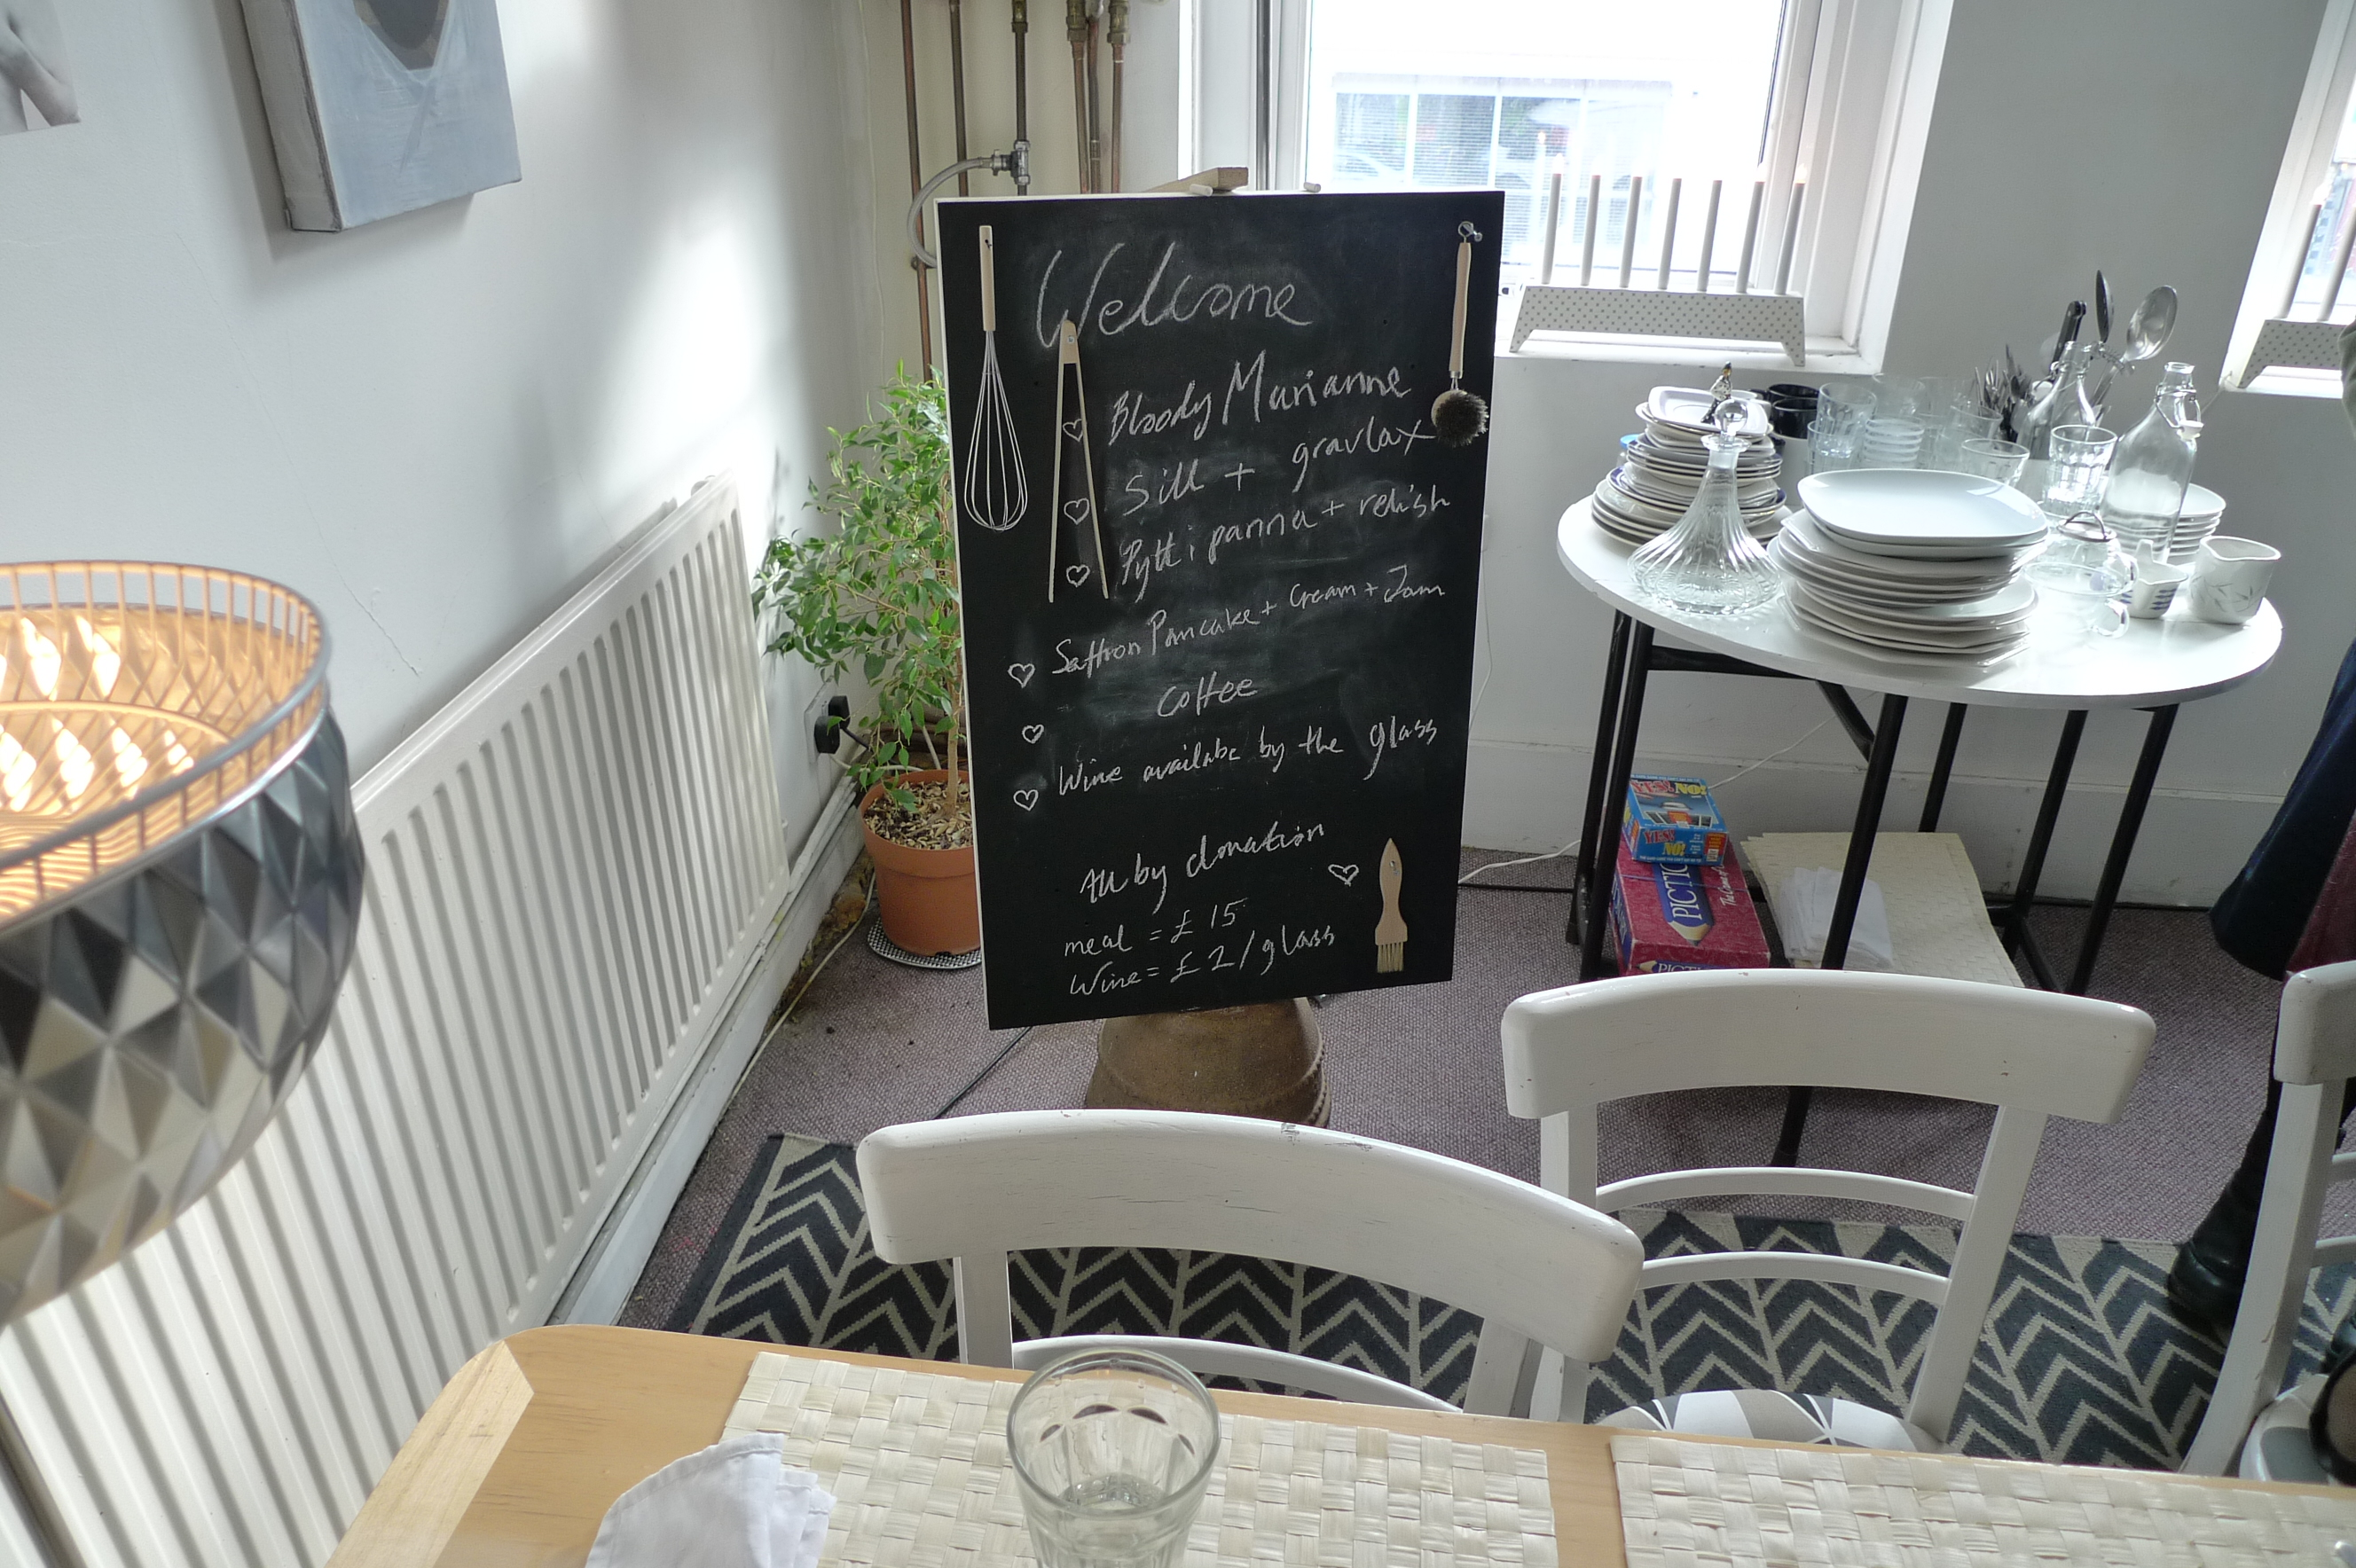 There Are Quite A Few Supper Clubs And Underground Restaurants In East London General But Only One That Does Swedish Brunch The